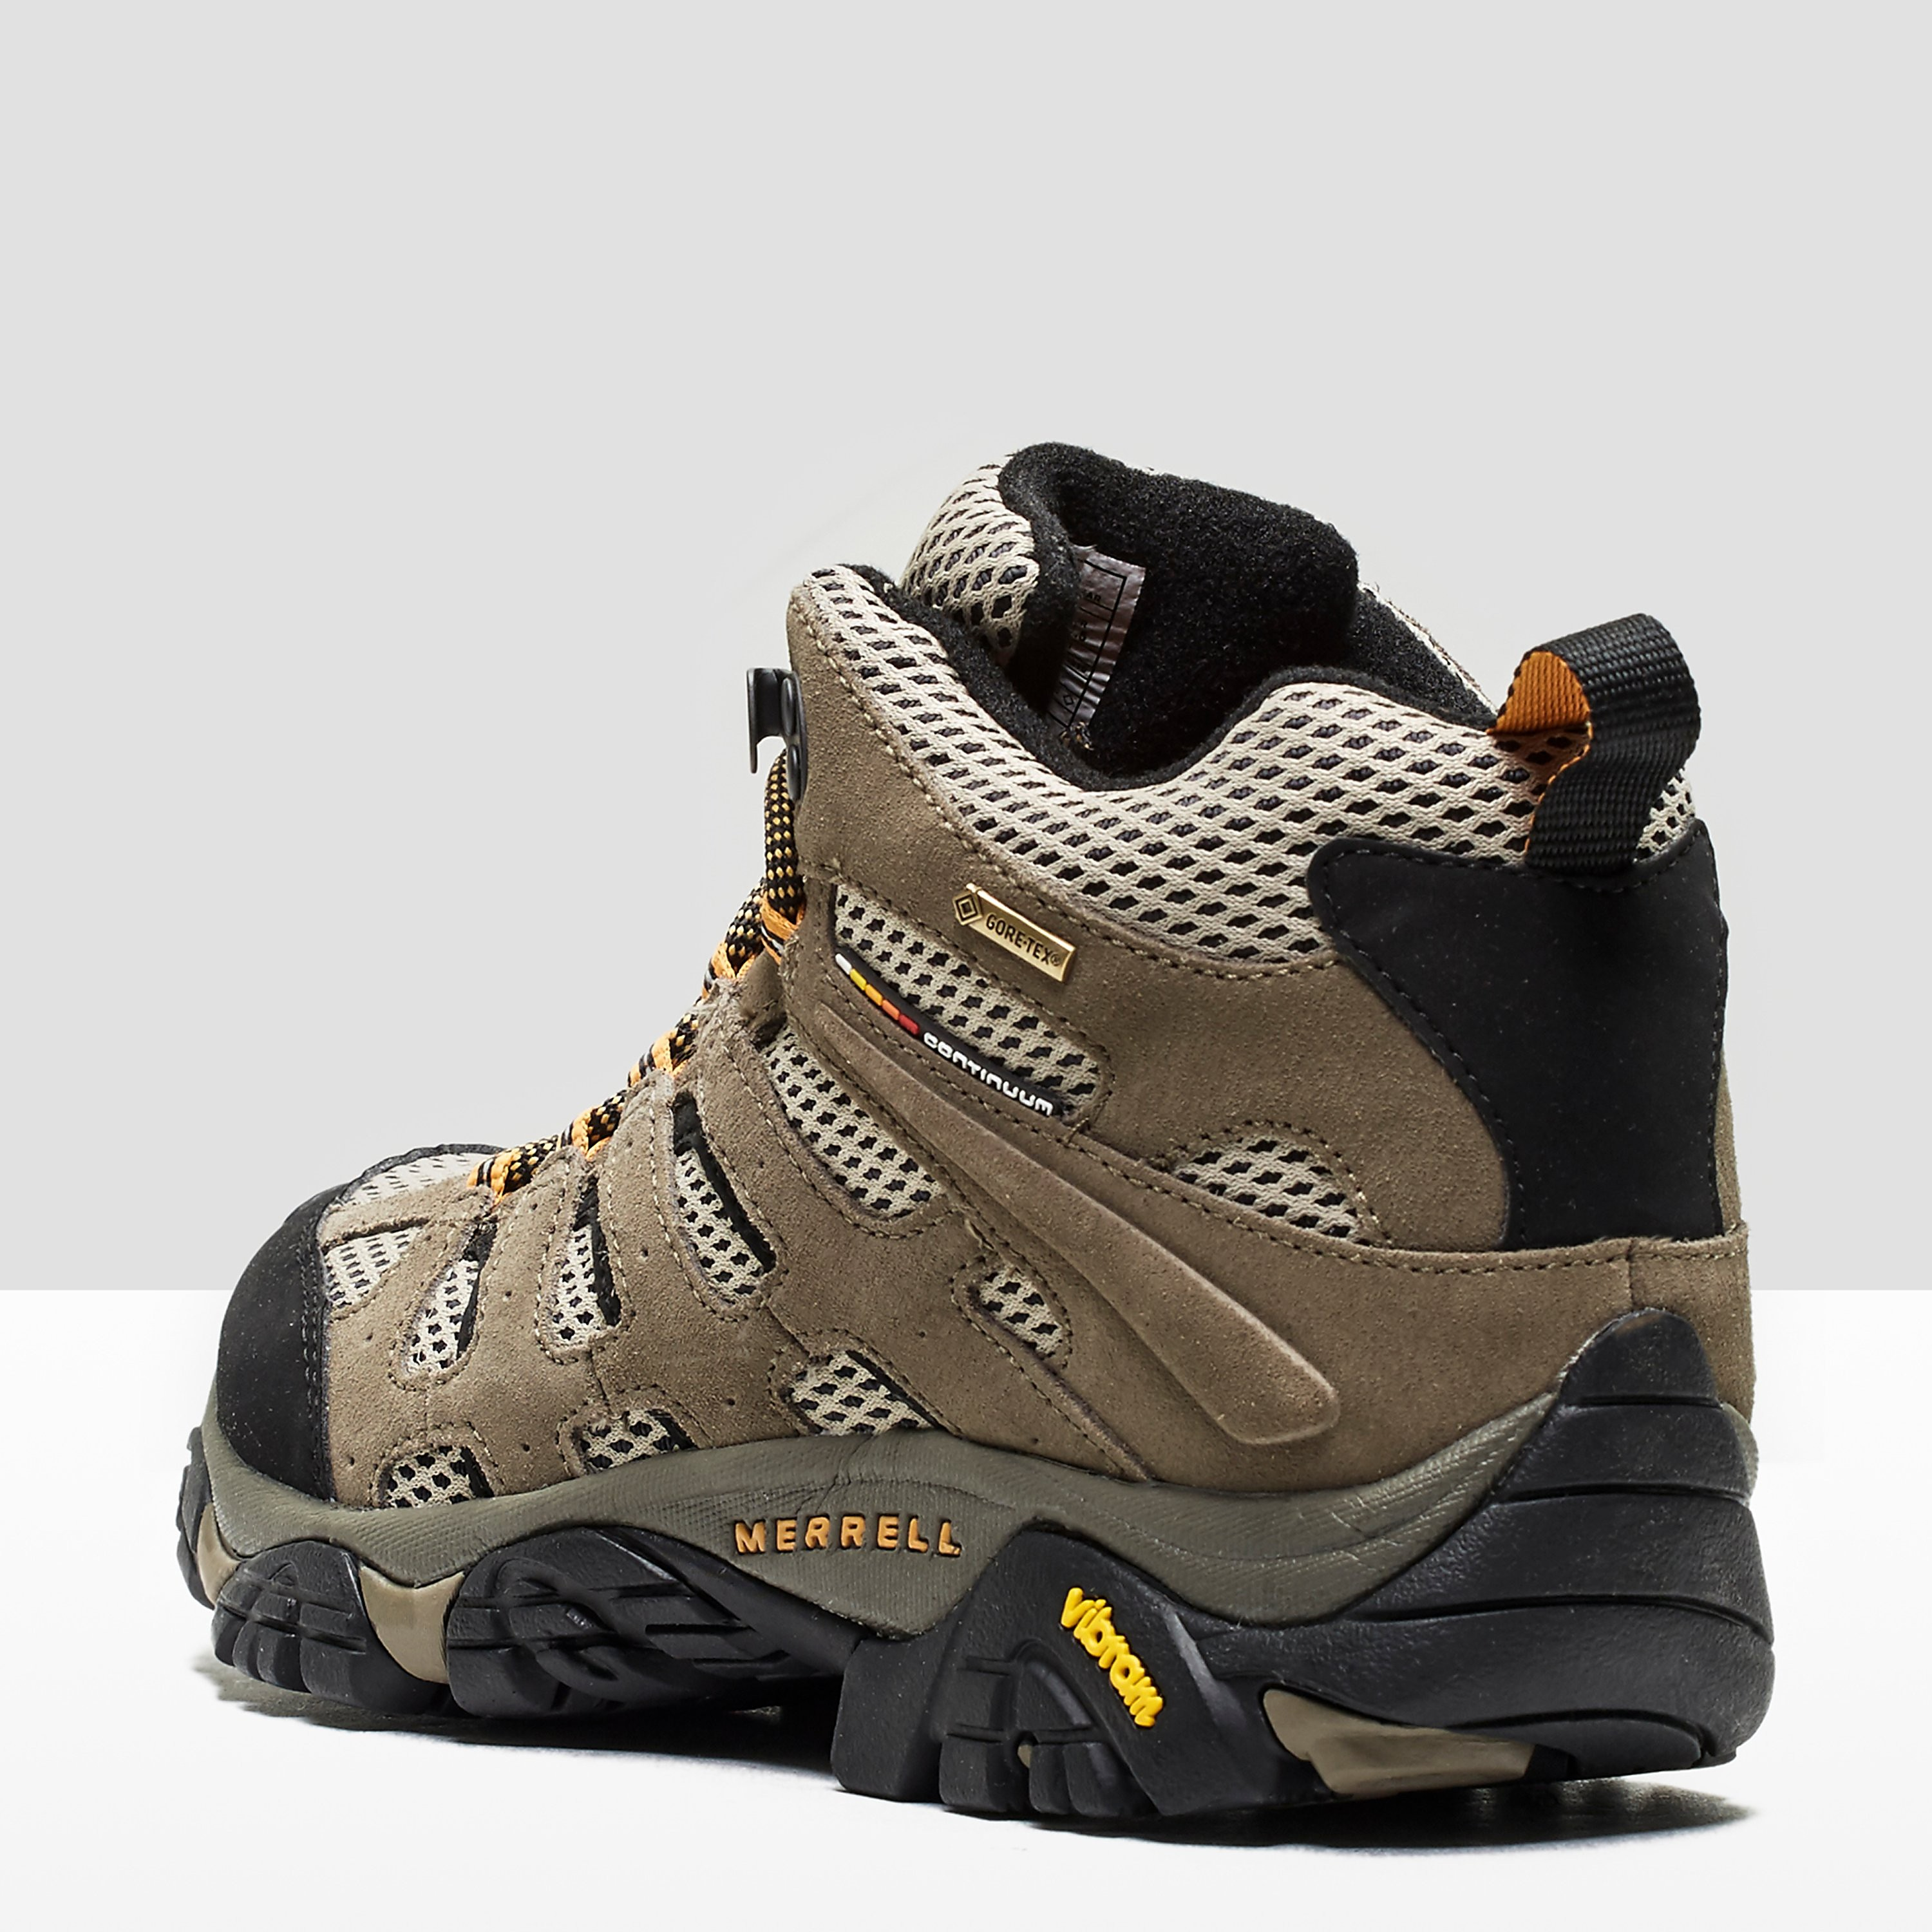 Merrell Moab Gore-Tex Men's Hiking Boots